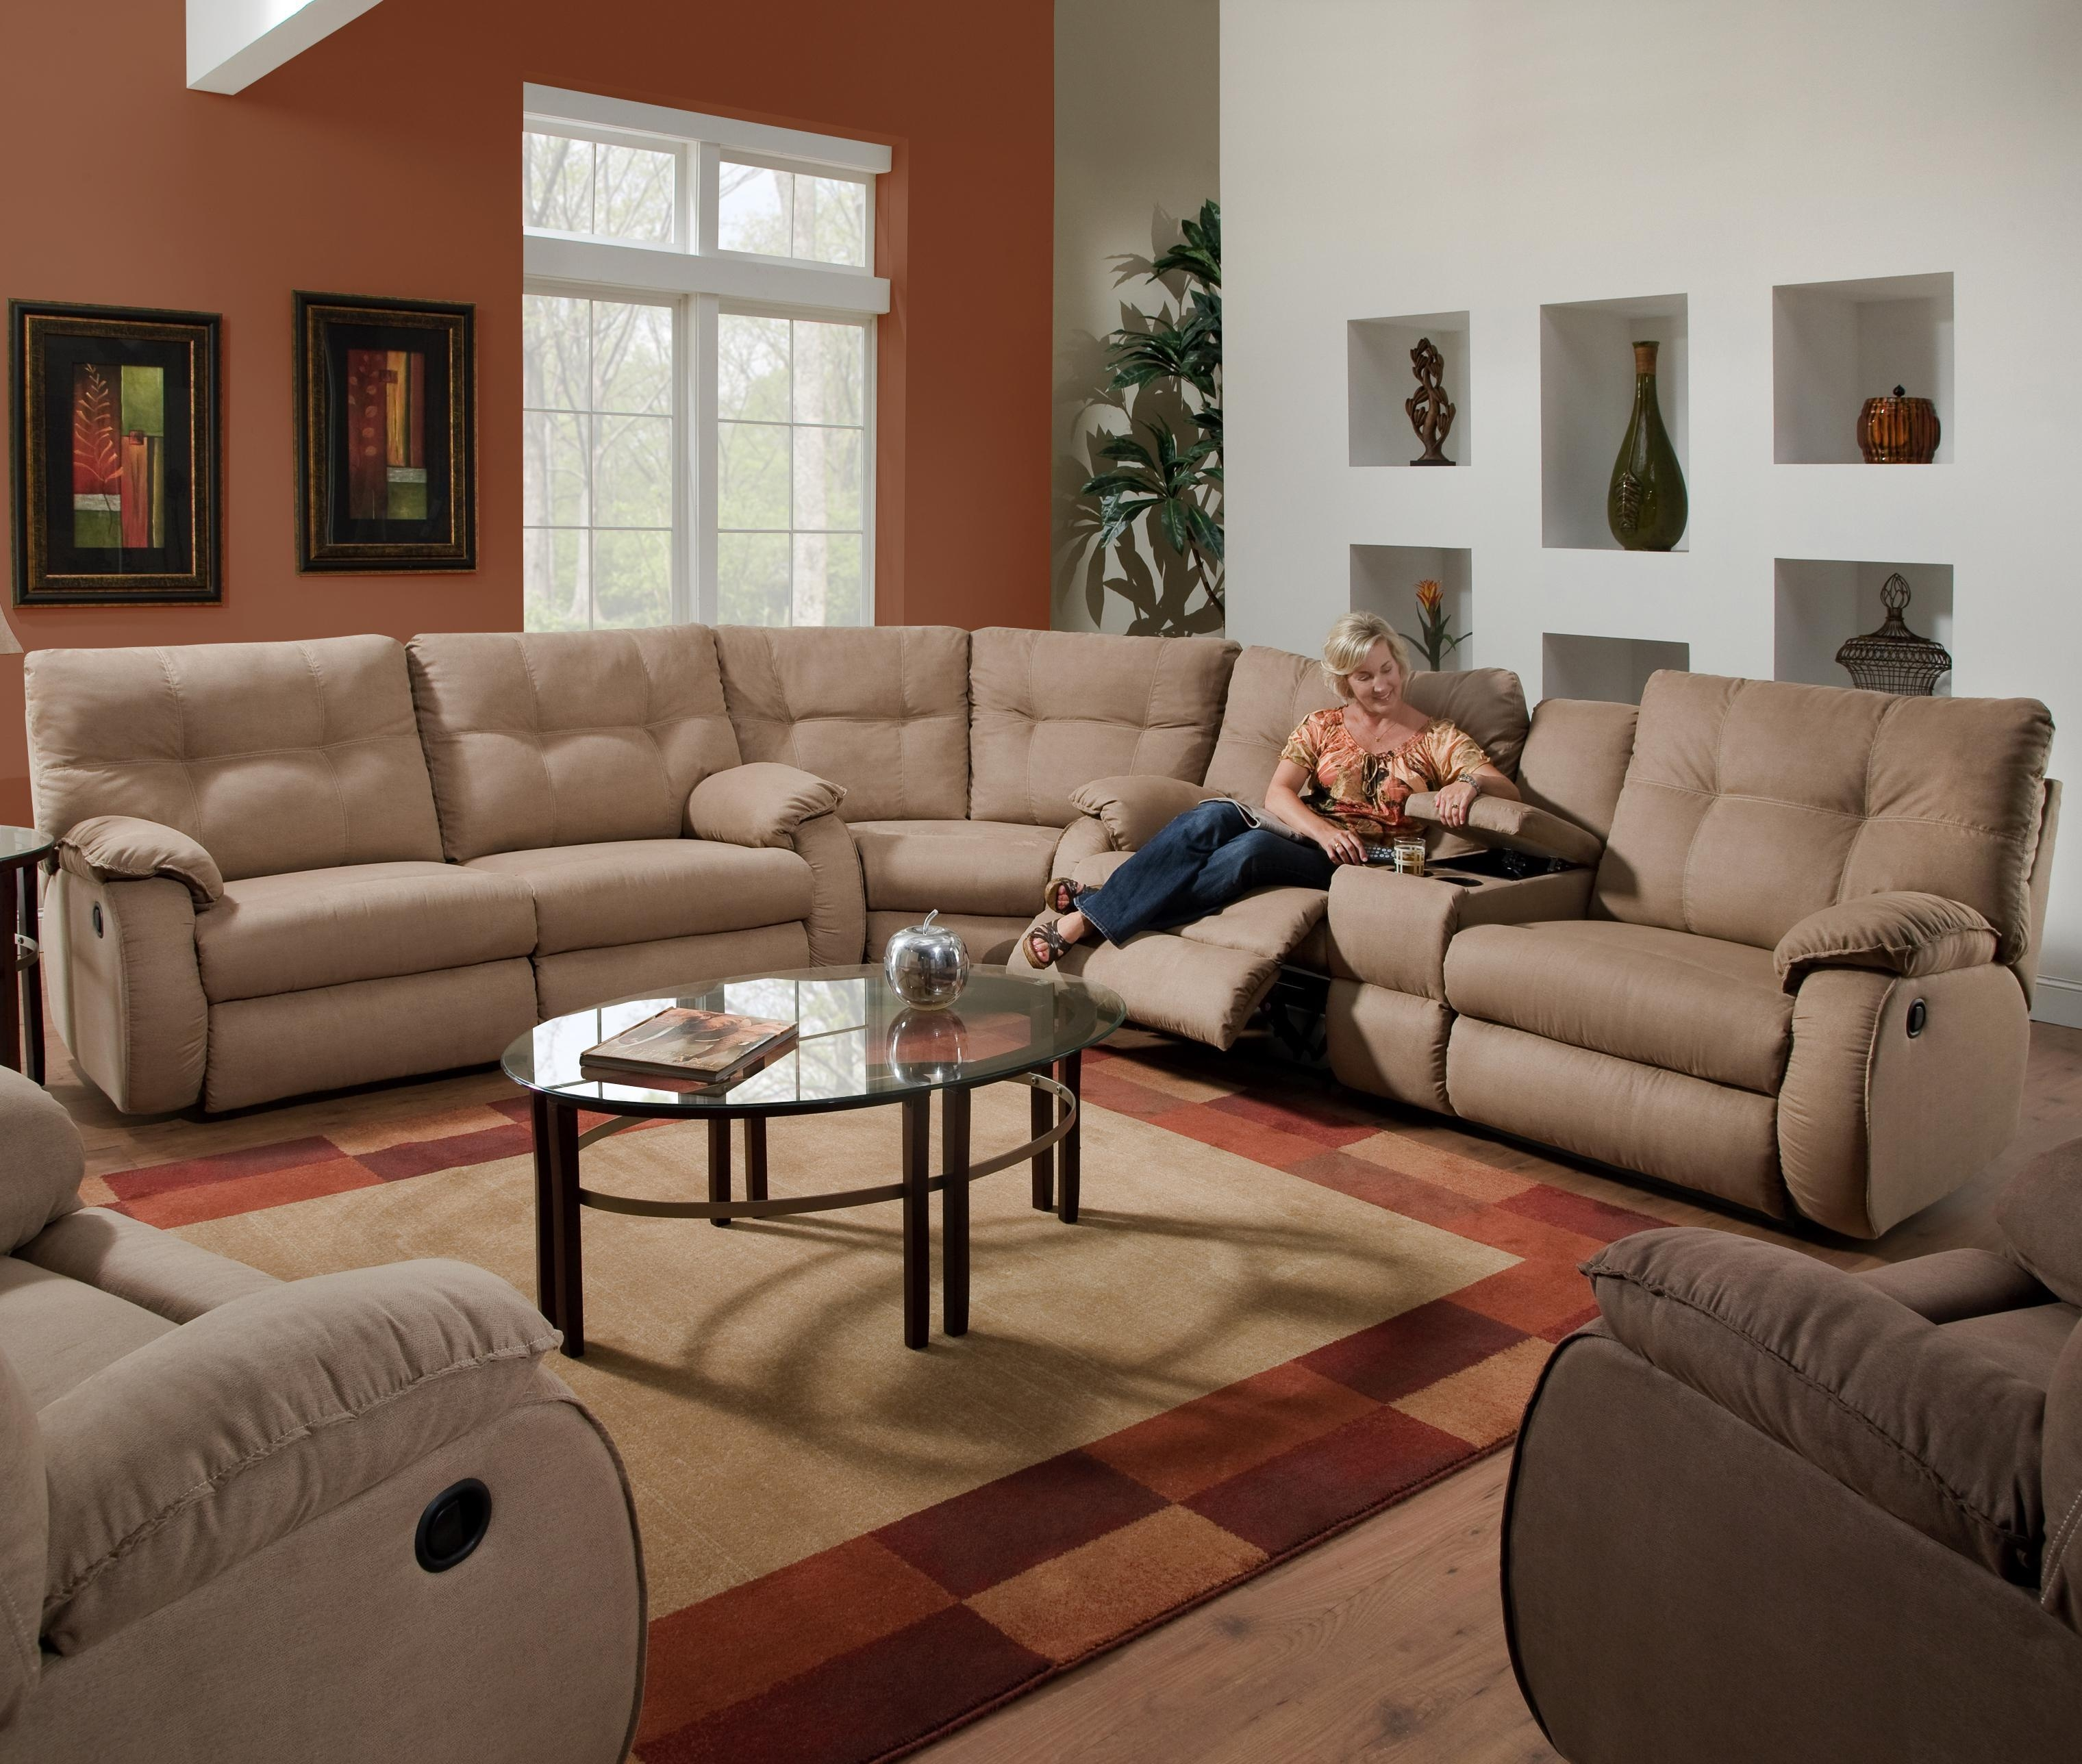 Sofas : Magnificent Fabric Reclining Sectional Sleeper Sectional Throughout Sectional Sofa Recliners (View 5 of 20)